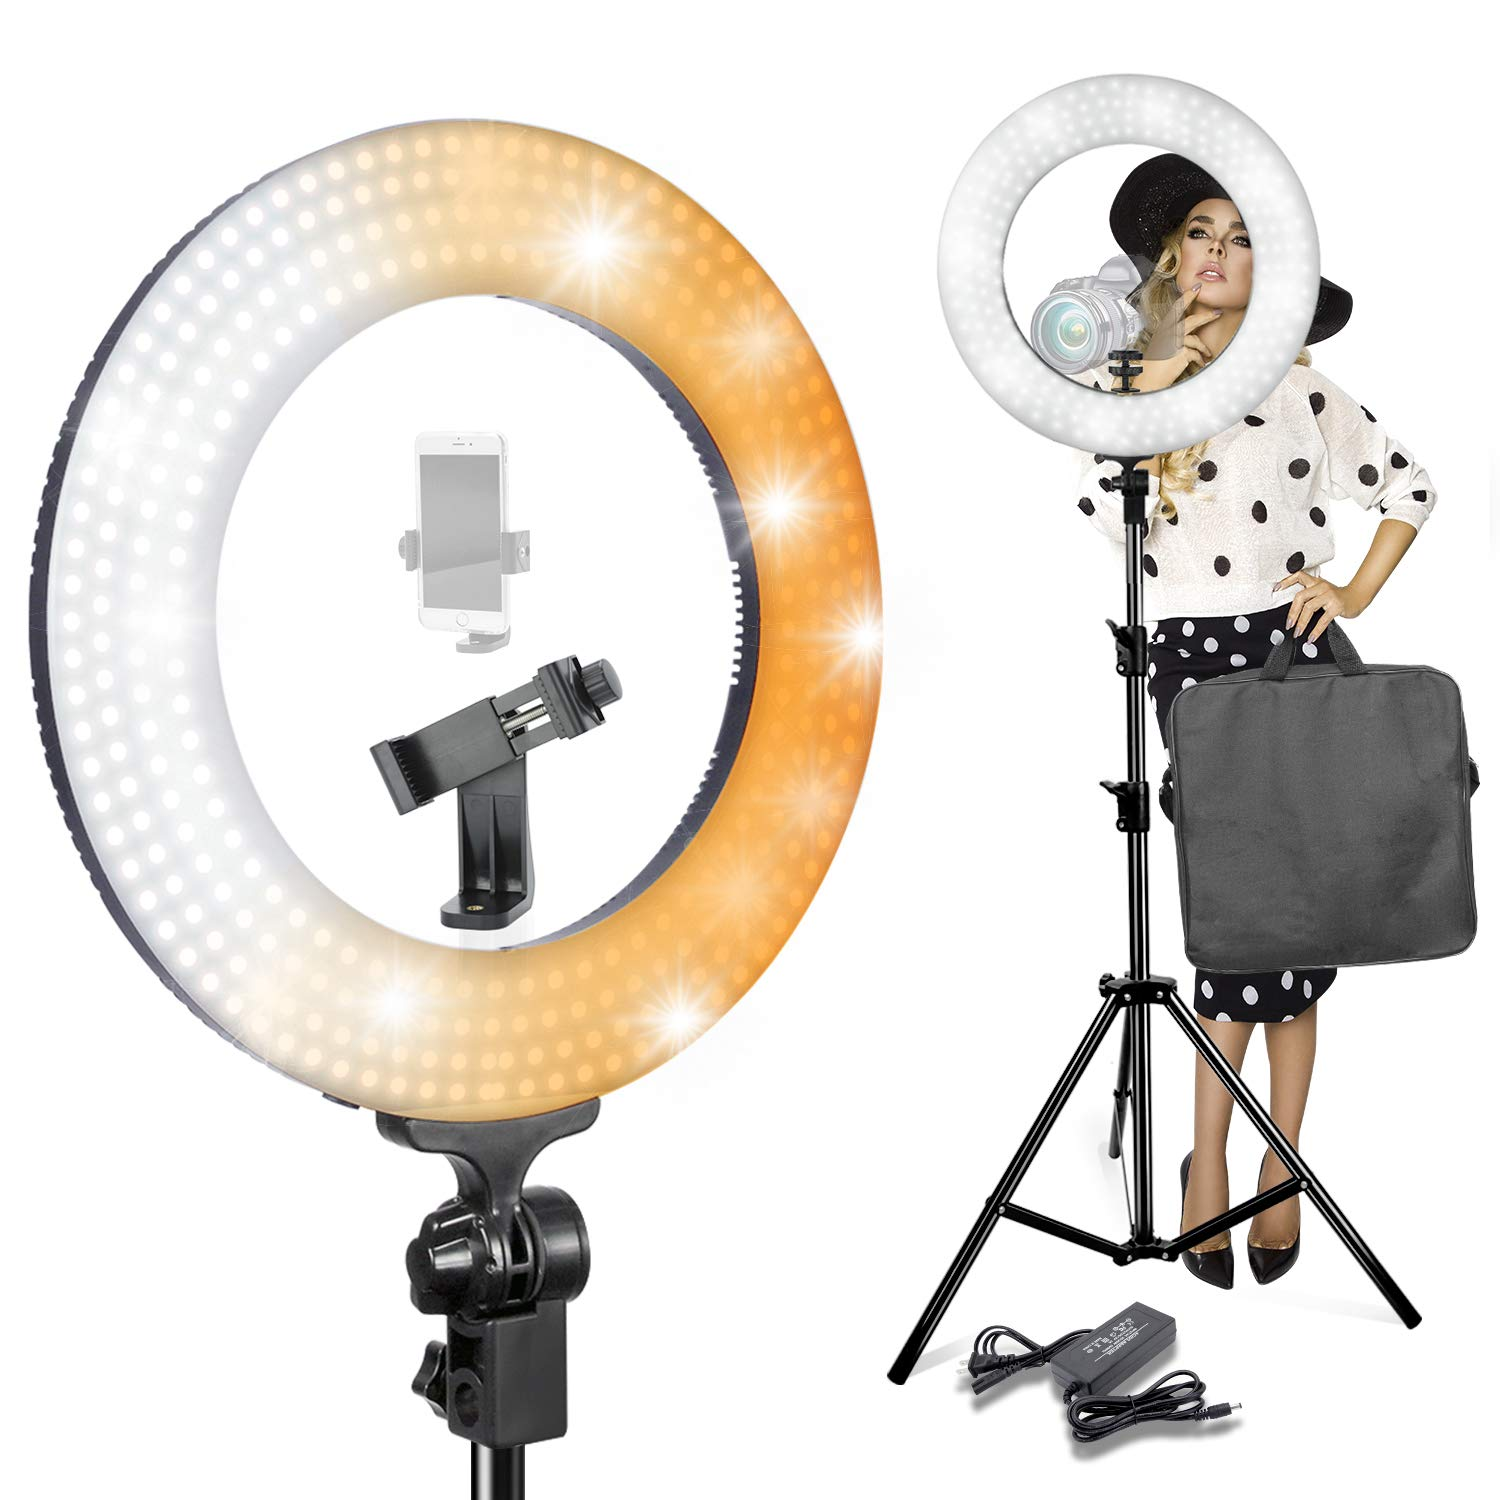 LimoStudio 14-inch Diameter Ring Light Continuous Round Ring Lighting Kit, 5500K Photography Photo Studio Light Stand, AGG1773V4